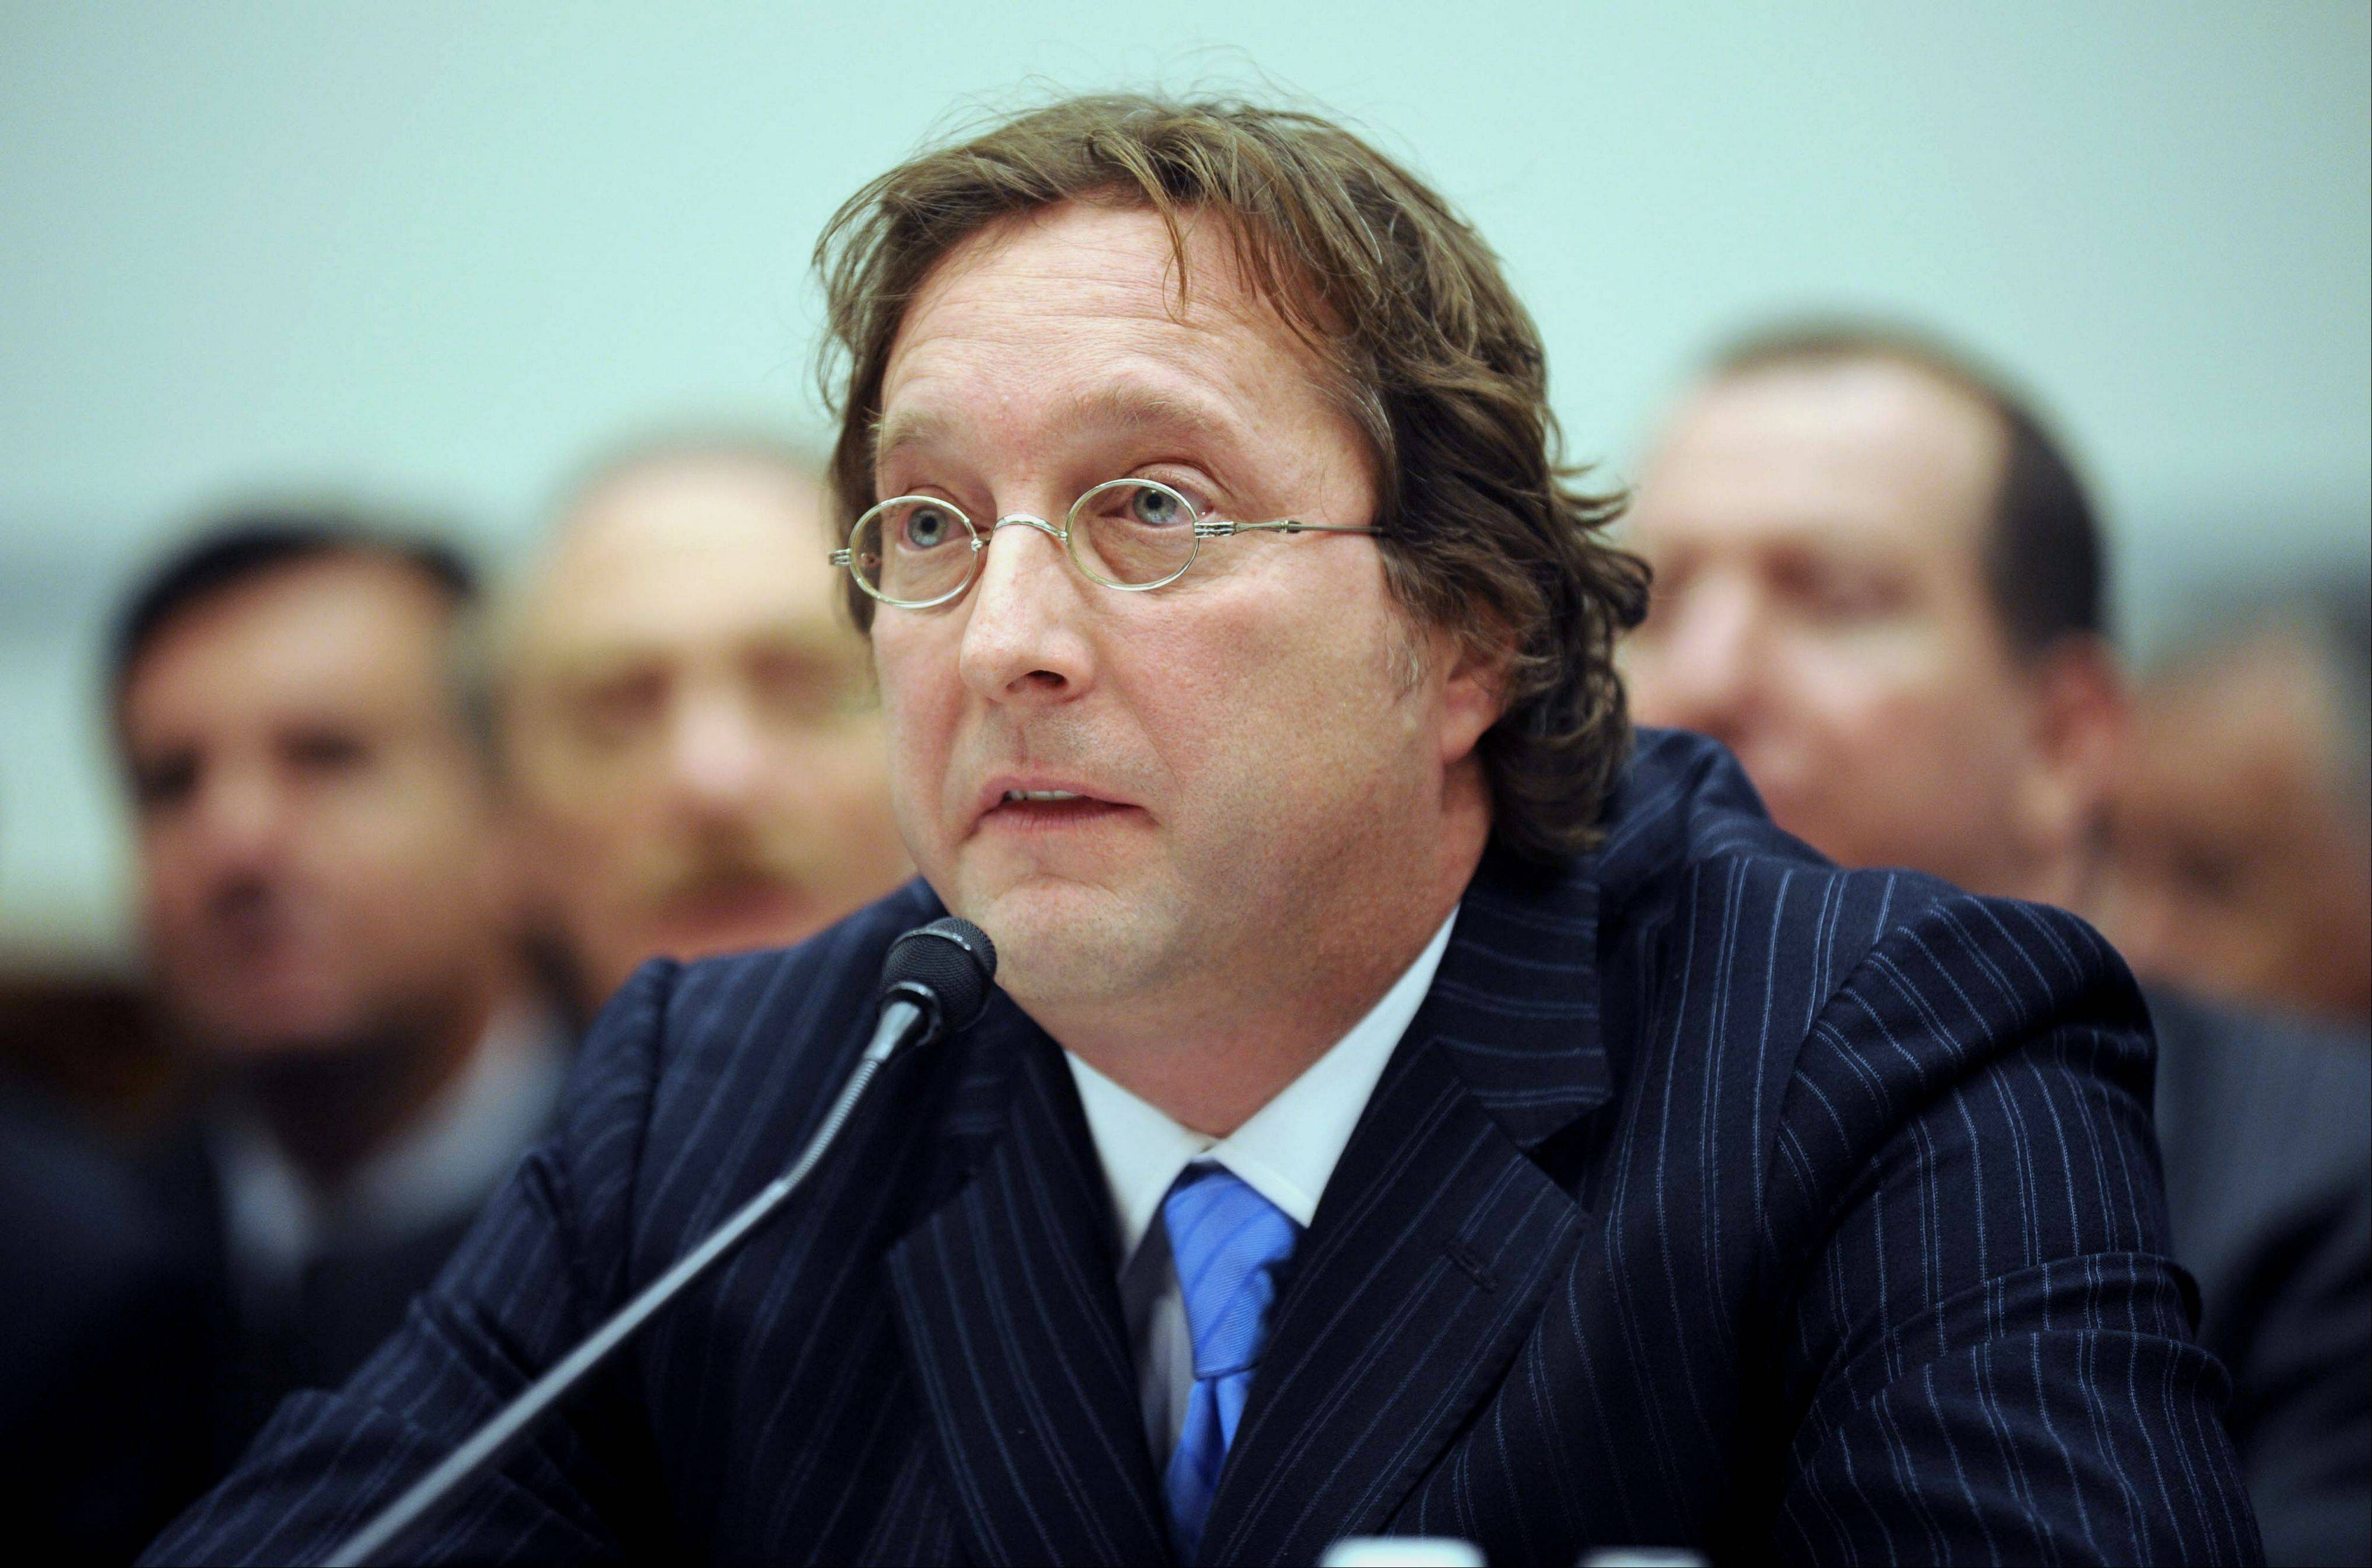 Associated Press/2008 file photoBillionaire hedge fund manager Philip Falcone and his firm have agreed to pay $18 million to settle civil fraud charges.